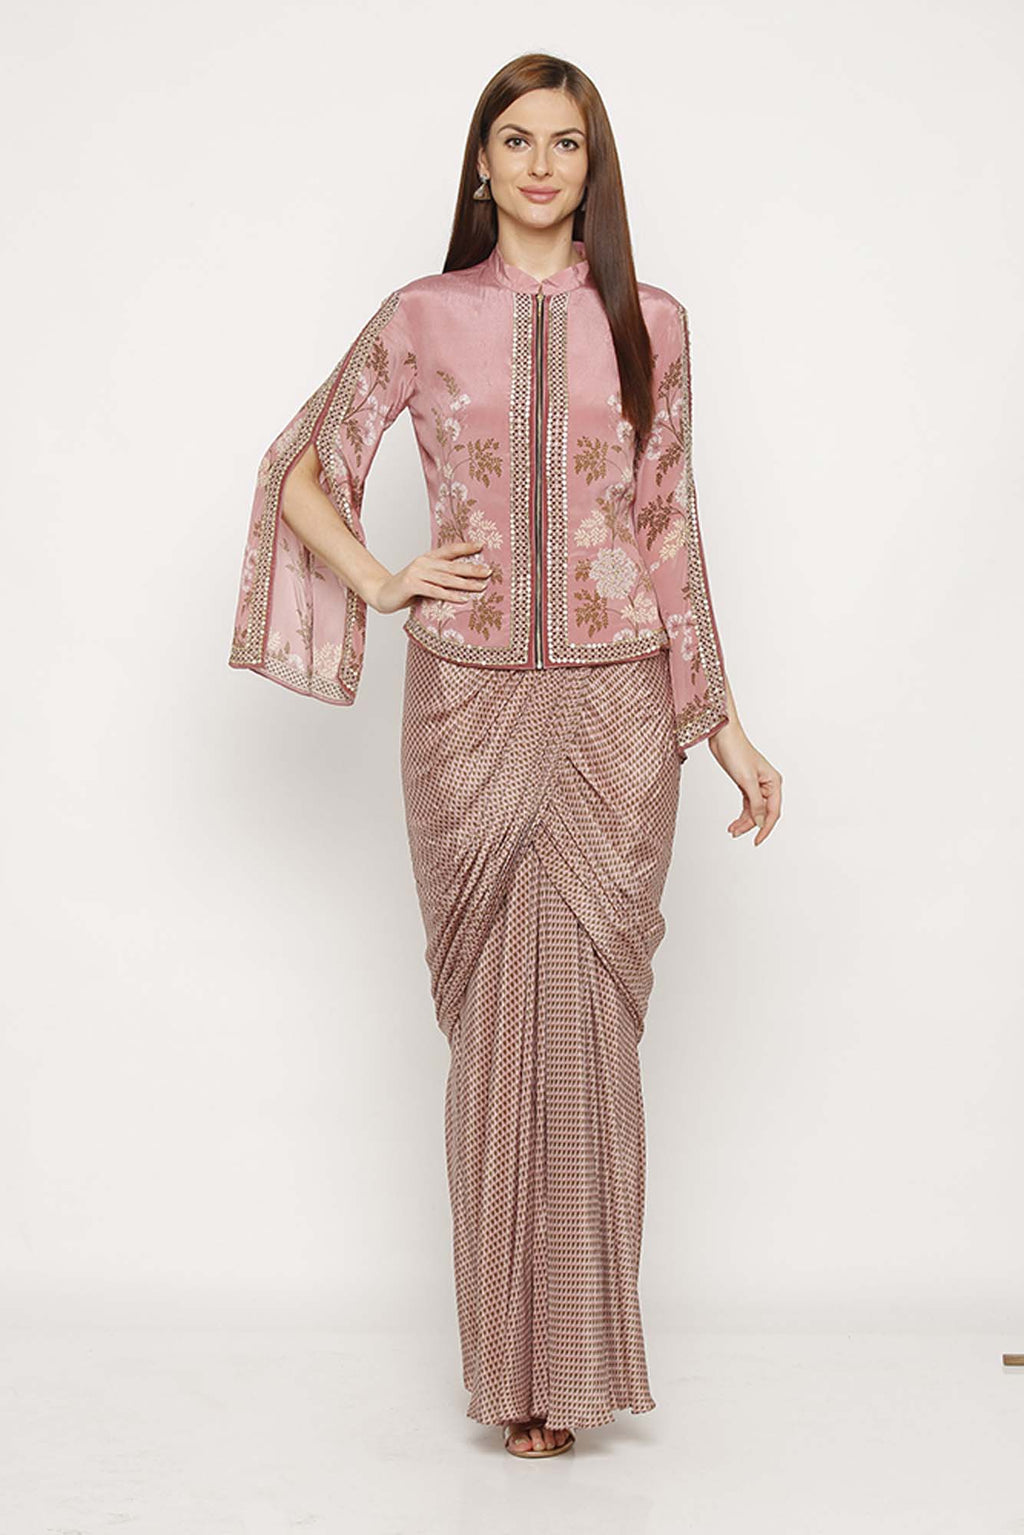 Printed Pink Jacket with Drape Skirt - Riviera Closet